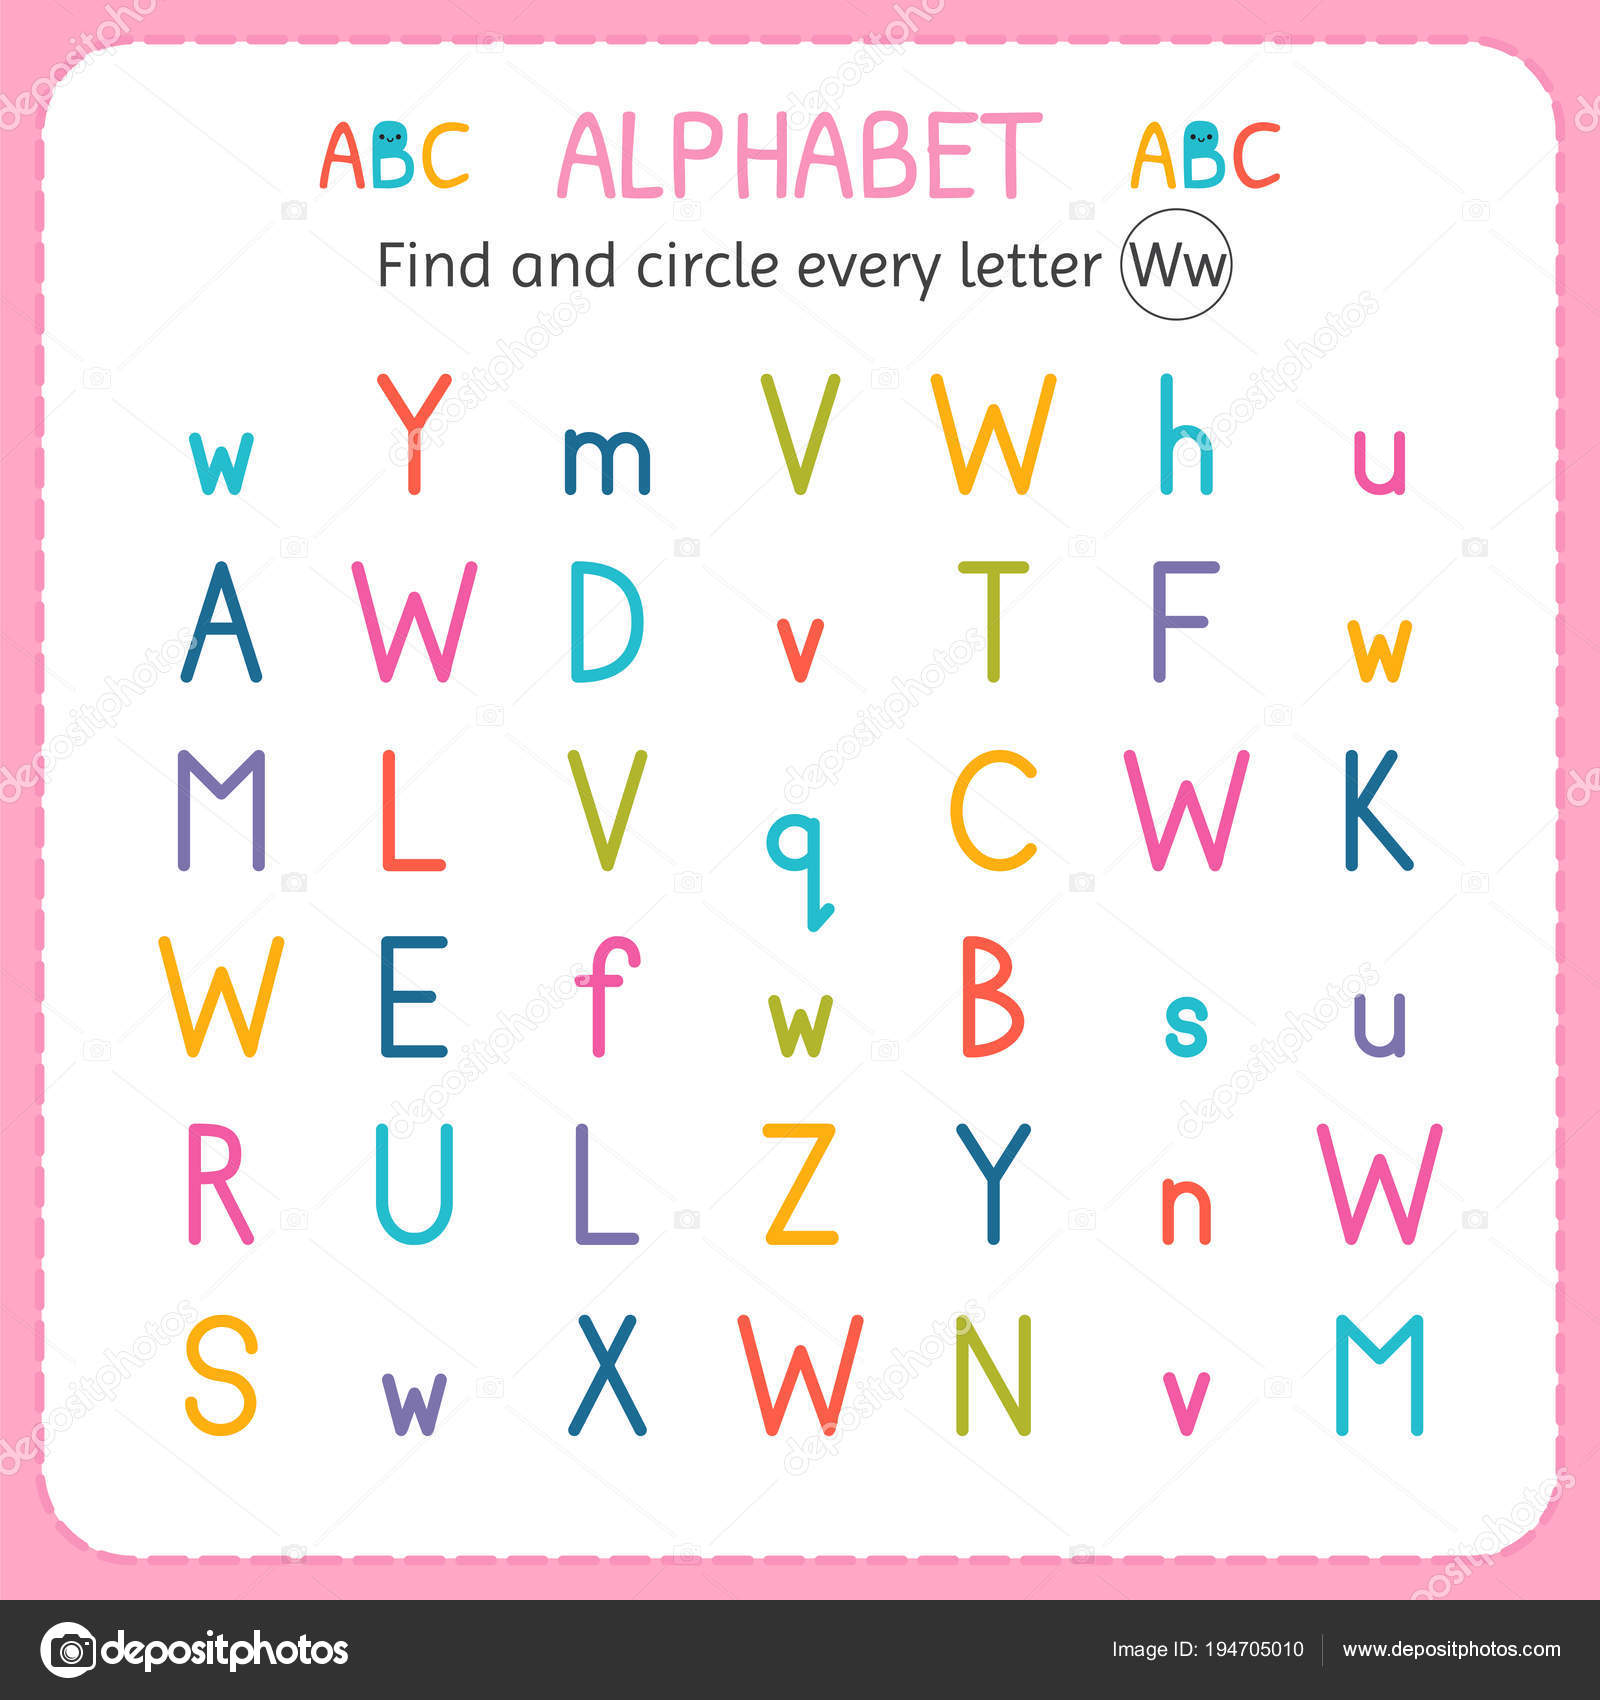 Find And Circle Every Letter W. Worksheet For Kindergarten And Preschool.  Exercises For Children